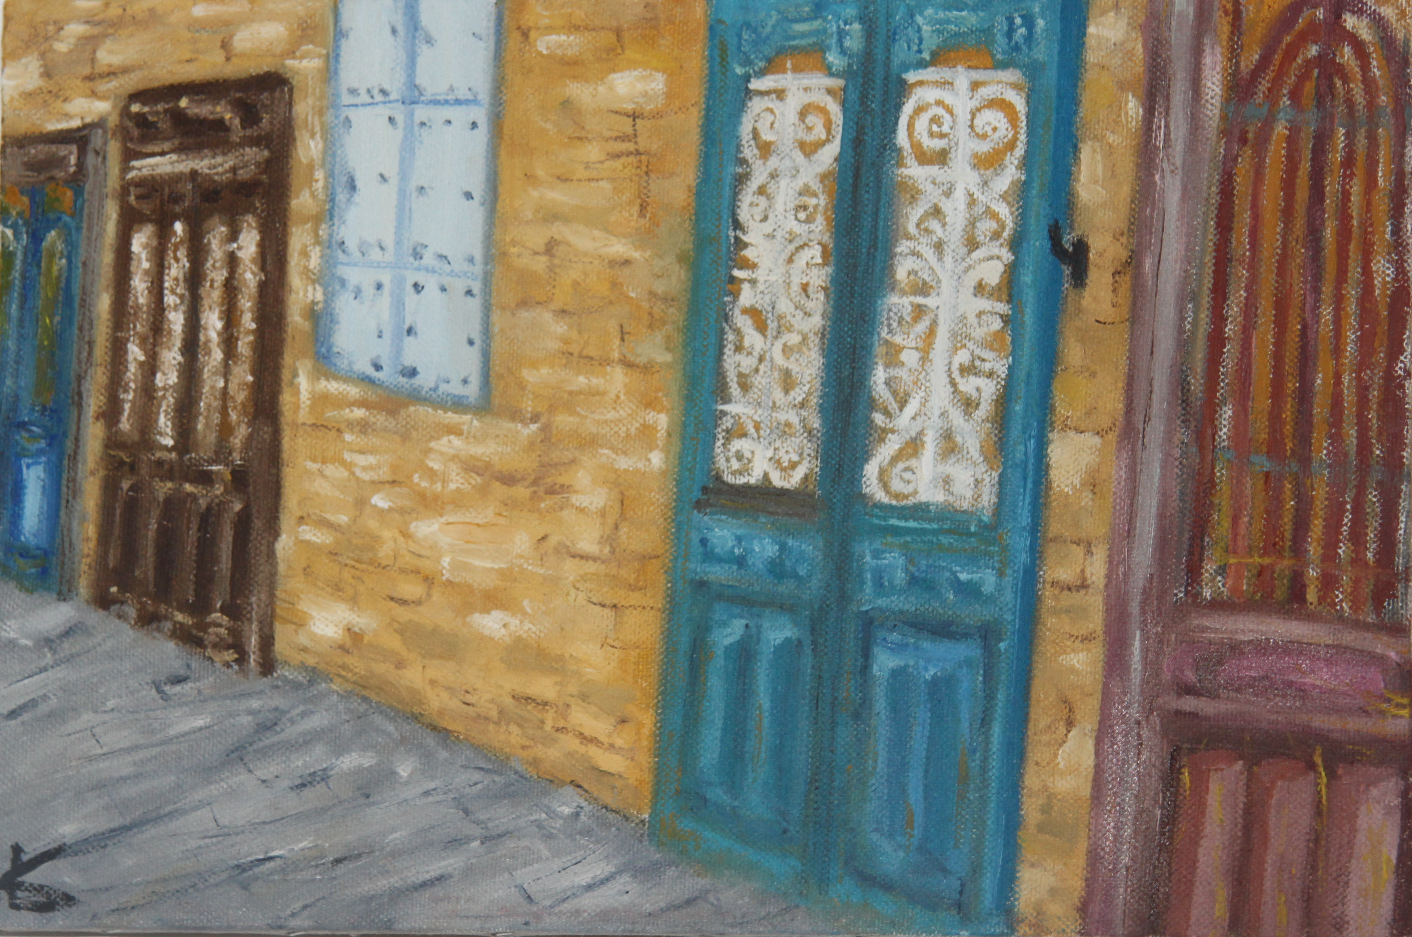 Doors in Jaffo